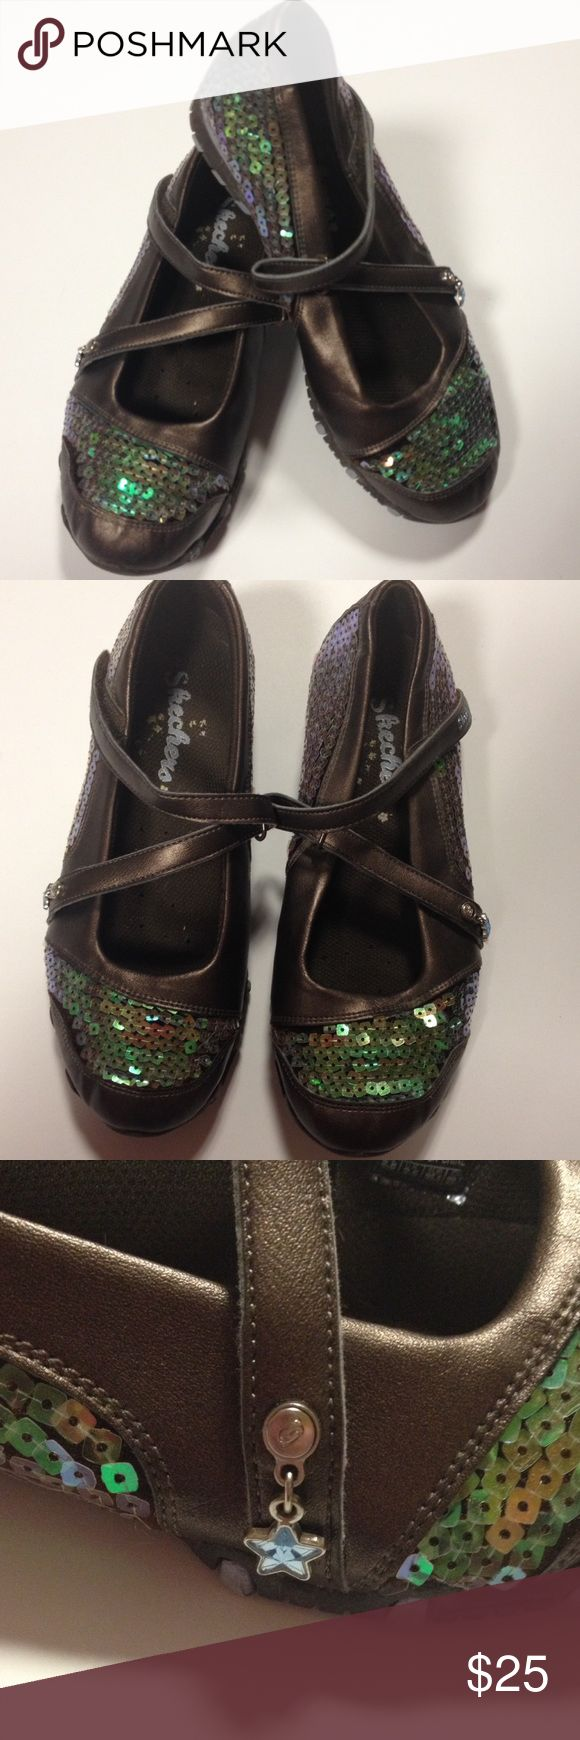 Skechers flats Bling Skechers with adorable details.  Very good preloved condition. Clean. Skechers Shoes Slippers